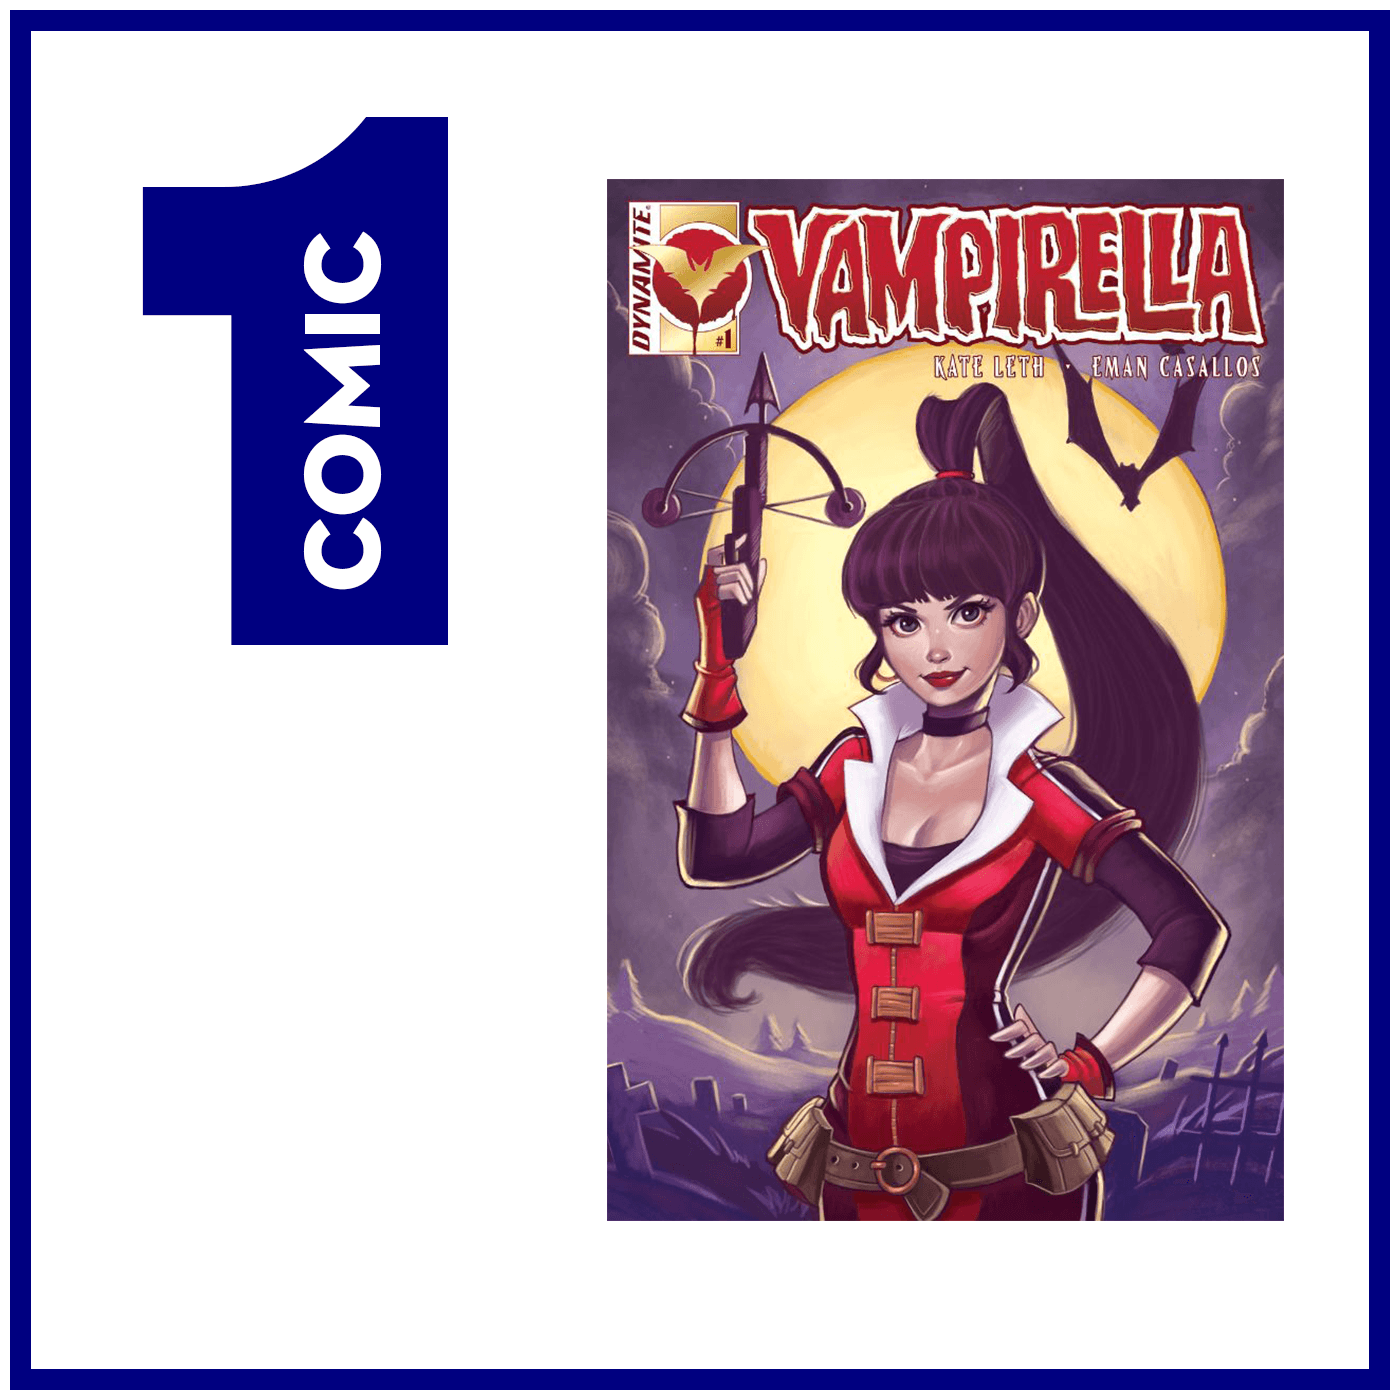 Episode 31 - Vampi, not vampy - Vampirella #1